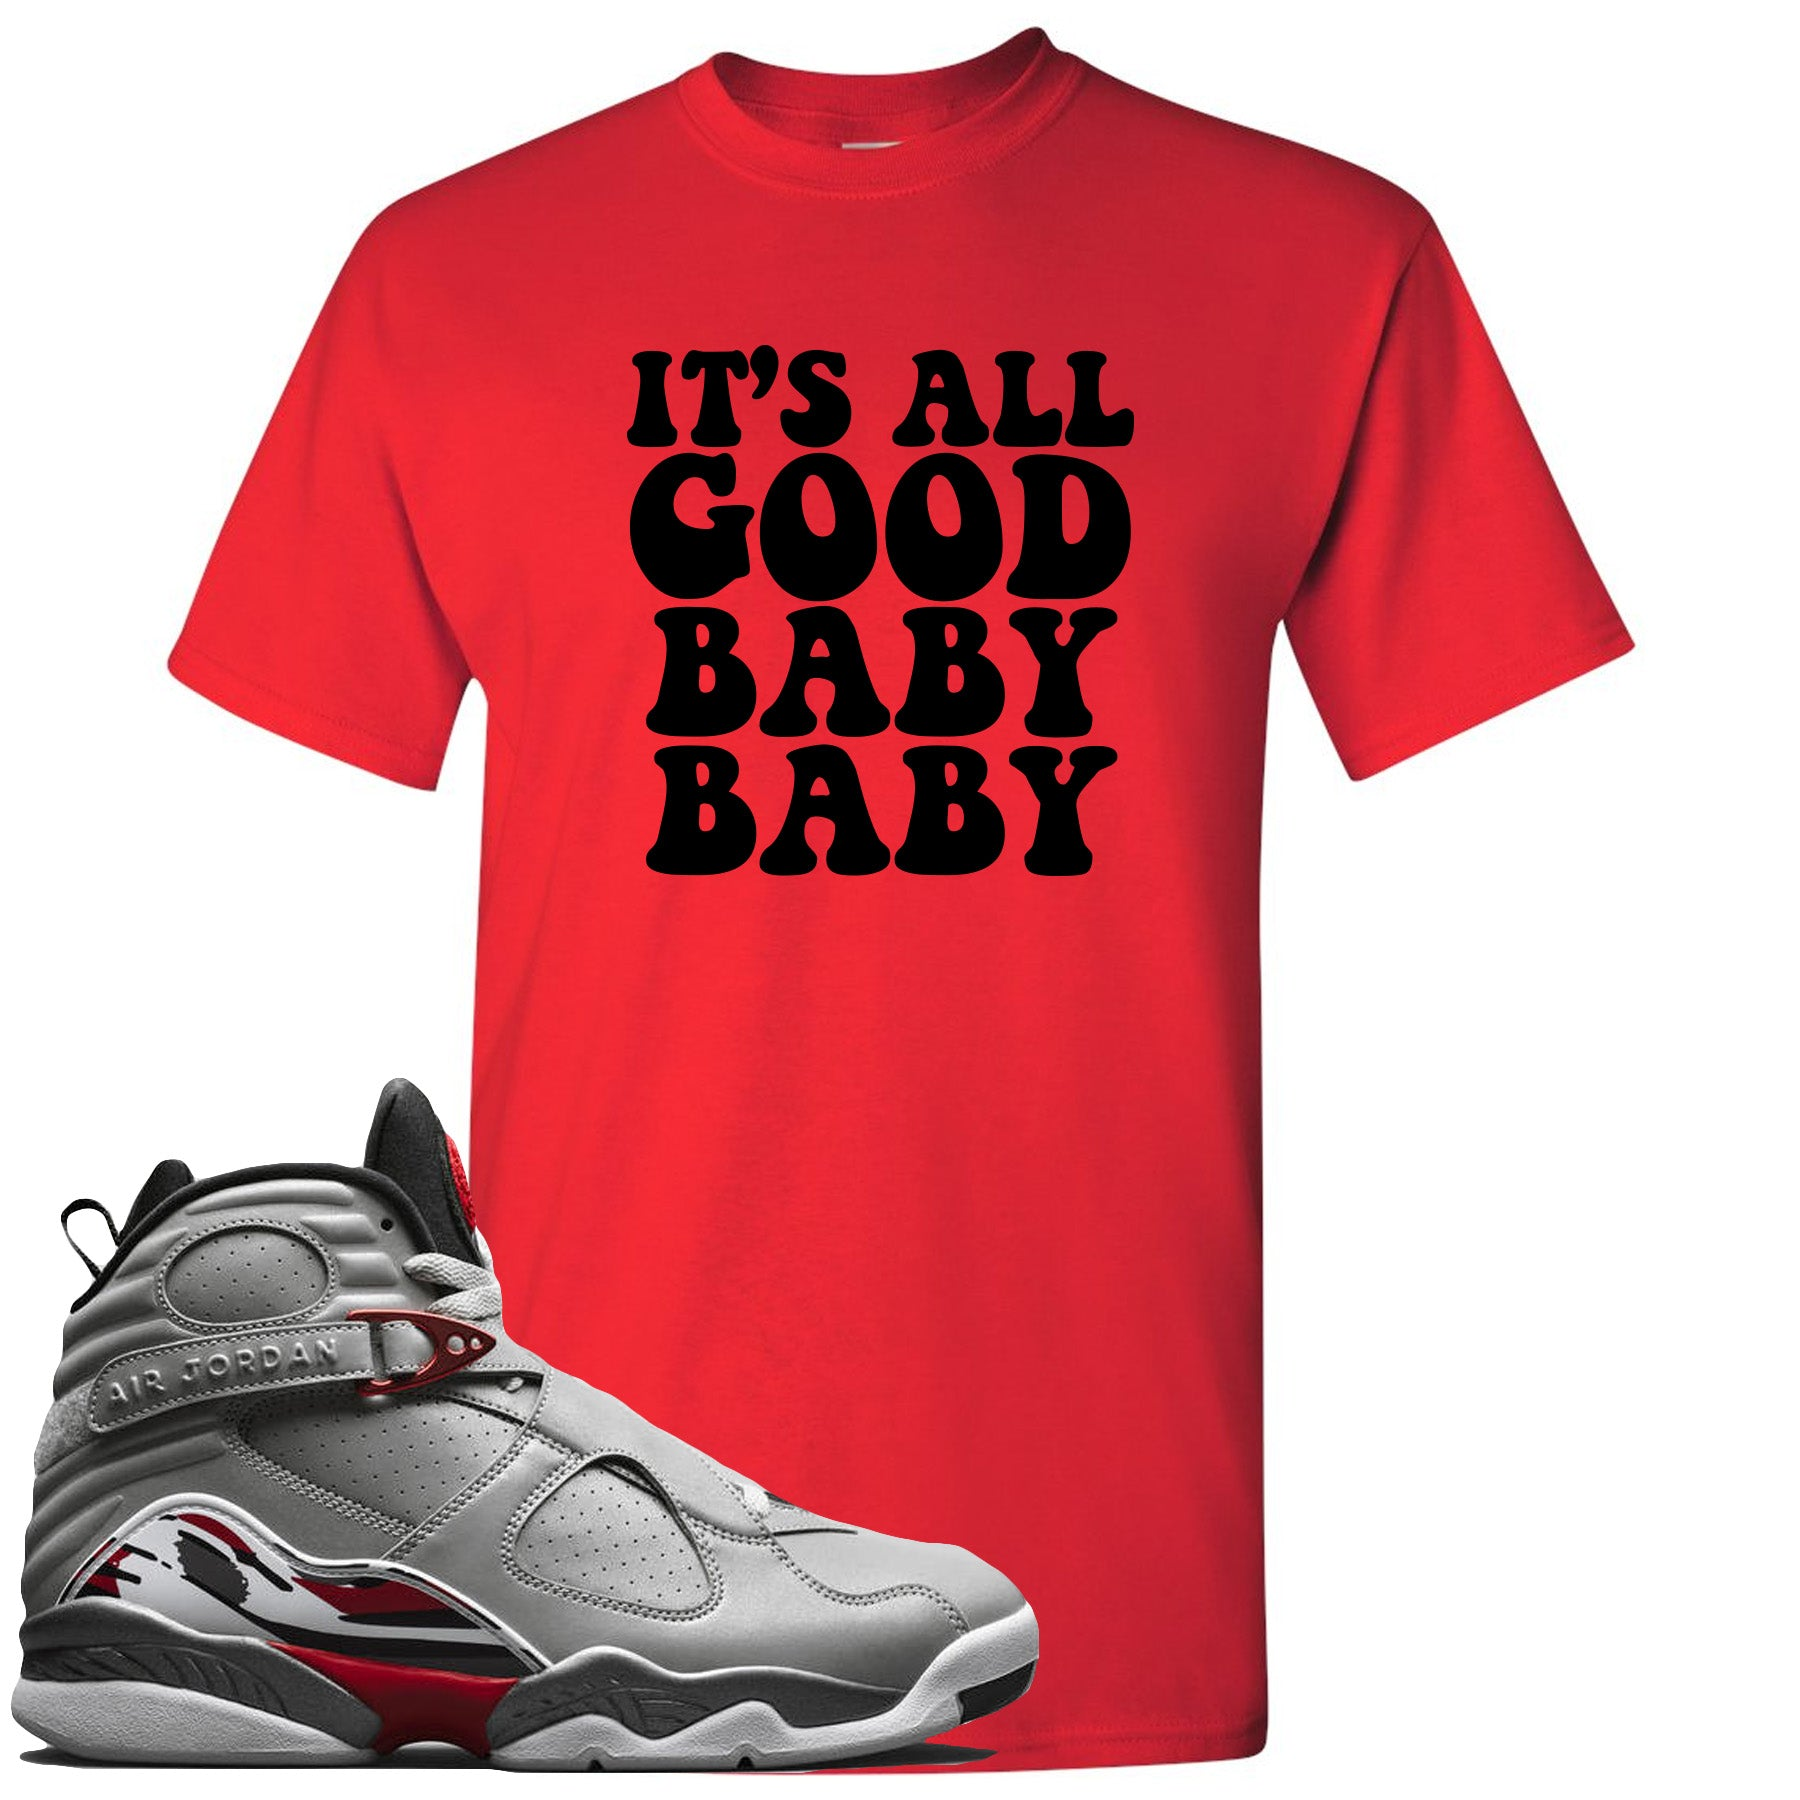 separation shoes 50cca fc9a9 Air Jordan 8 Reflections of a Champion Sneaker Match It's All Good Baby  Baby Red T-Shirt